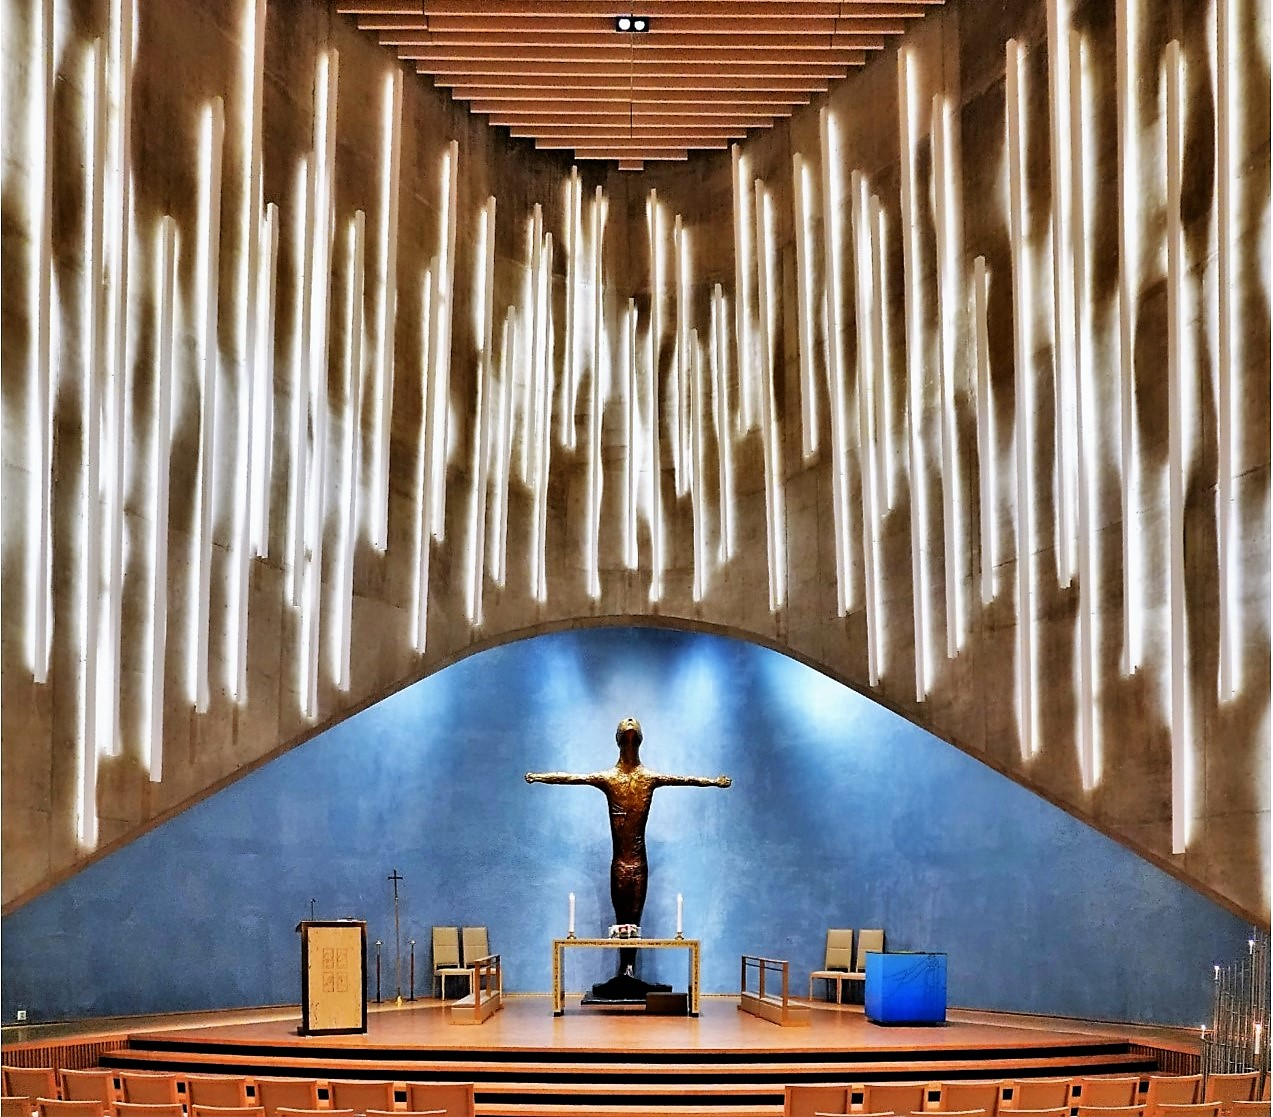 Light shafts and altar